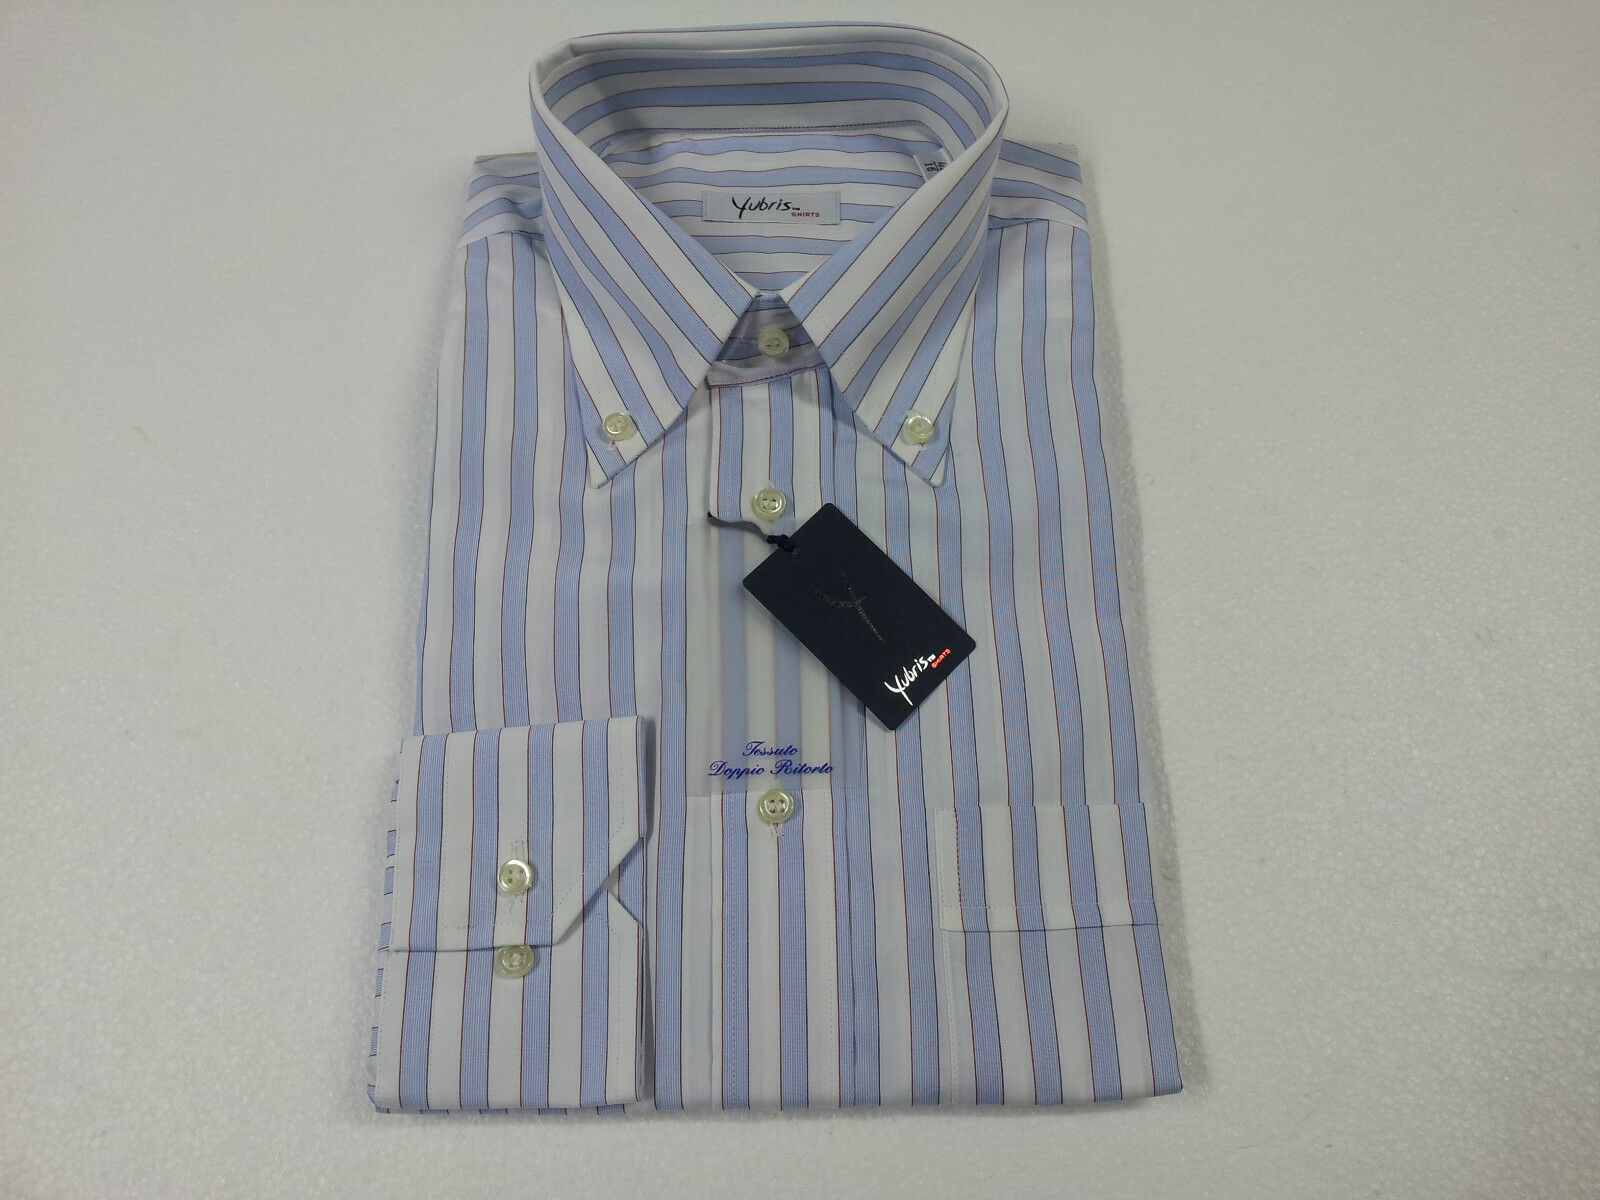 YUBRIS men's shirts striped 100% cotton double twisted regular fit